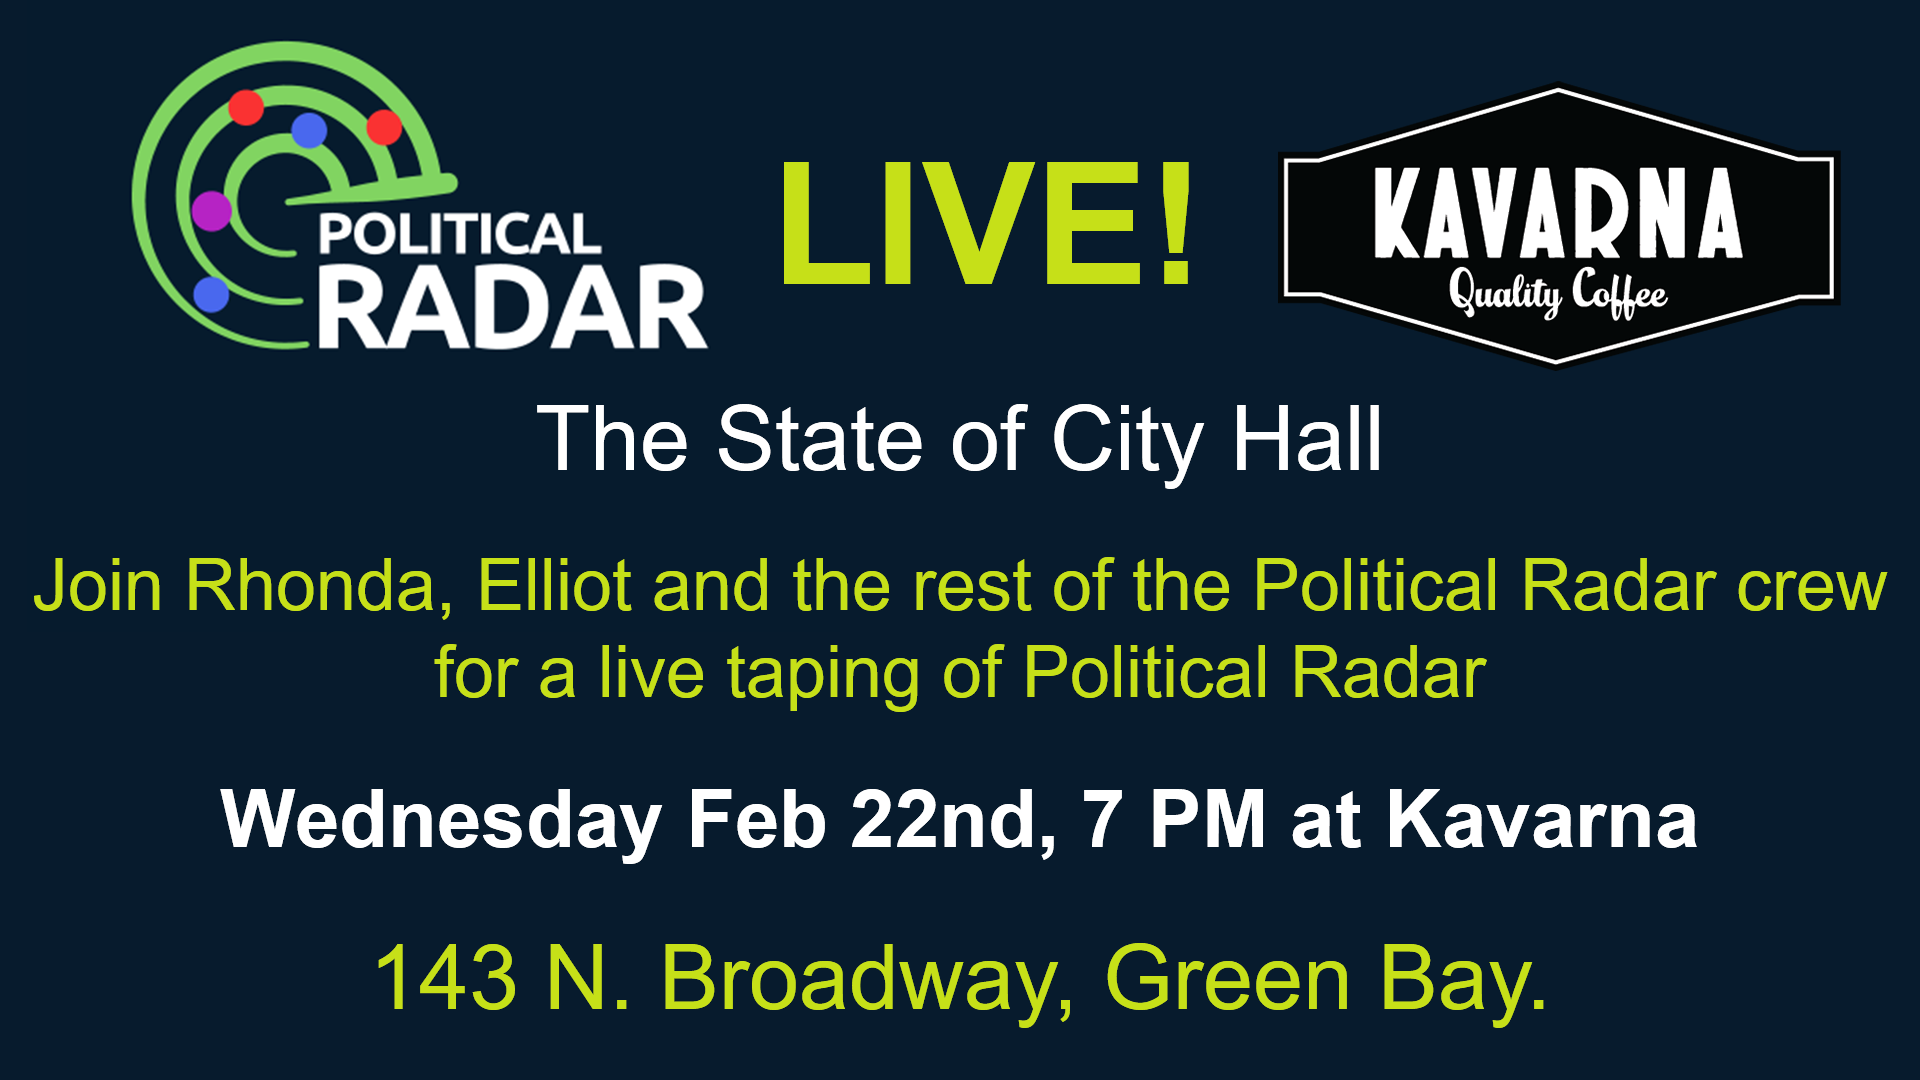 Political Radar Live at Kavarna